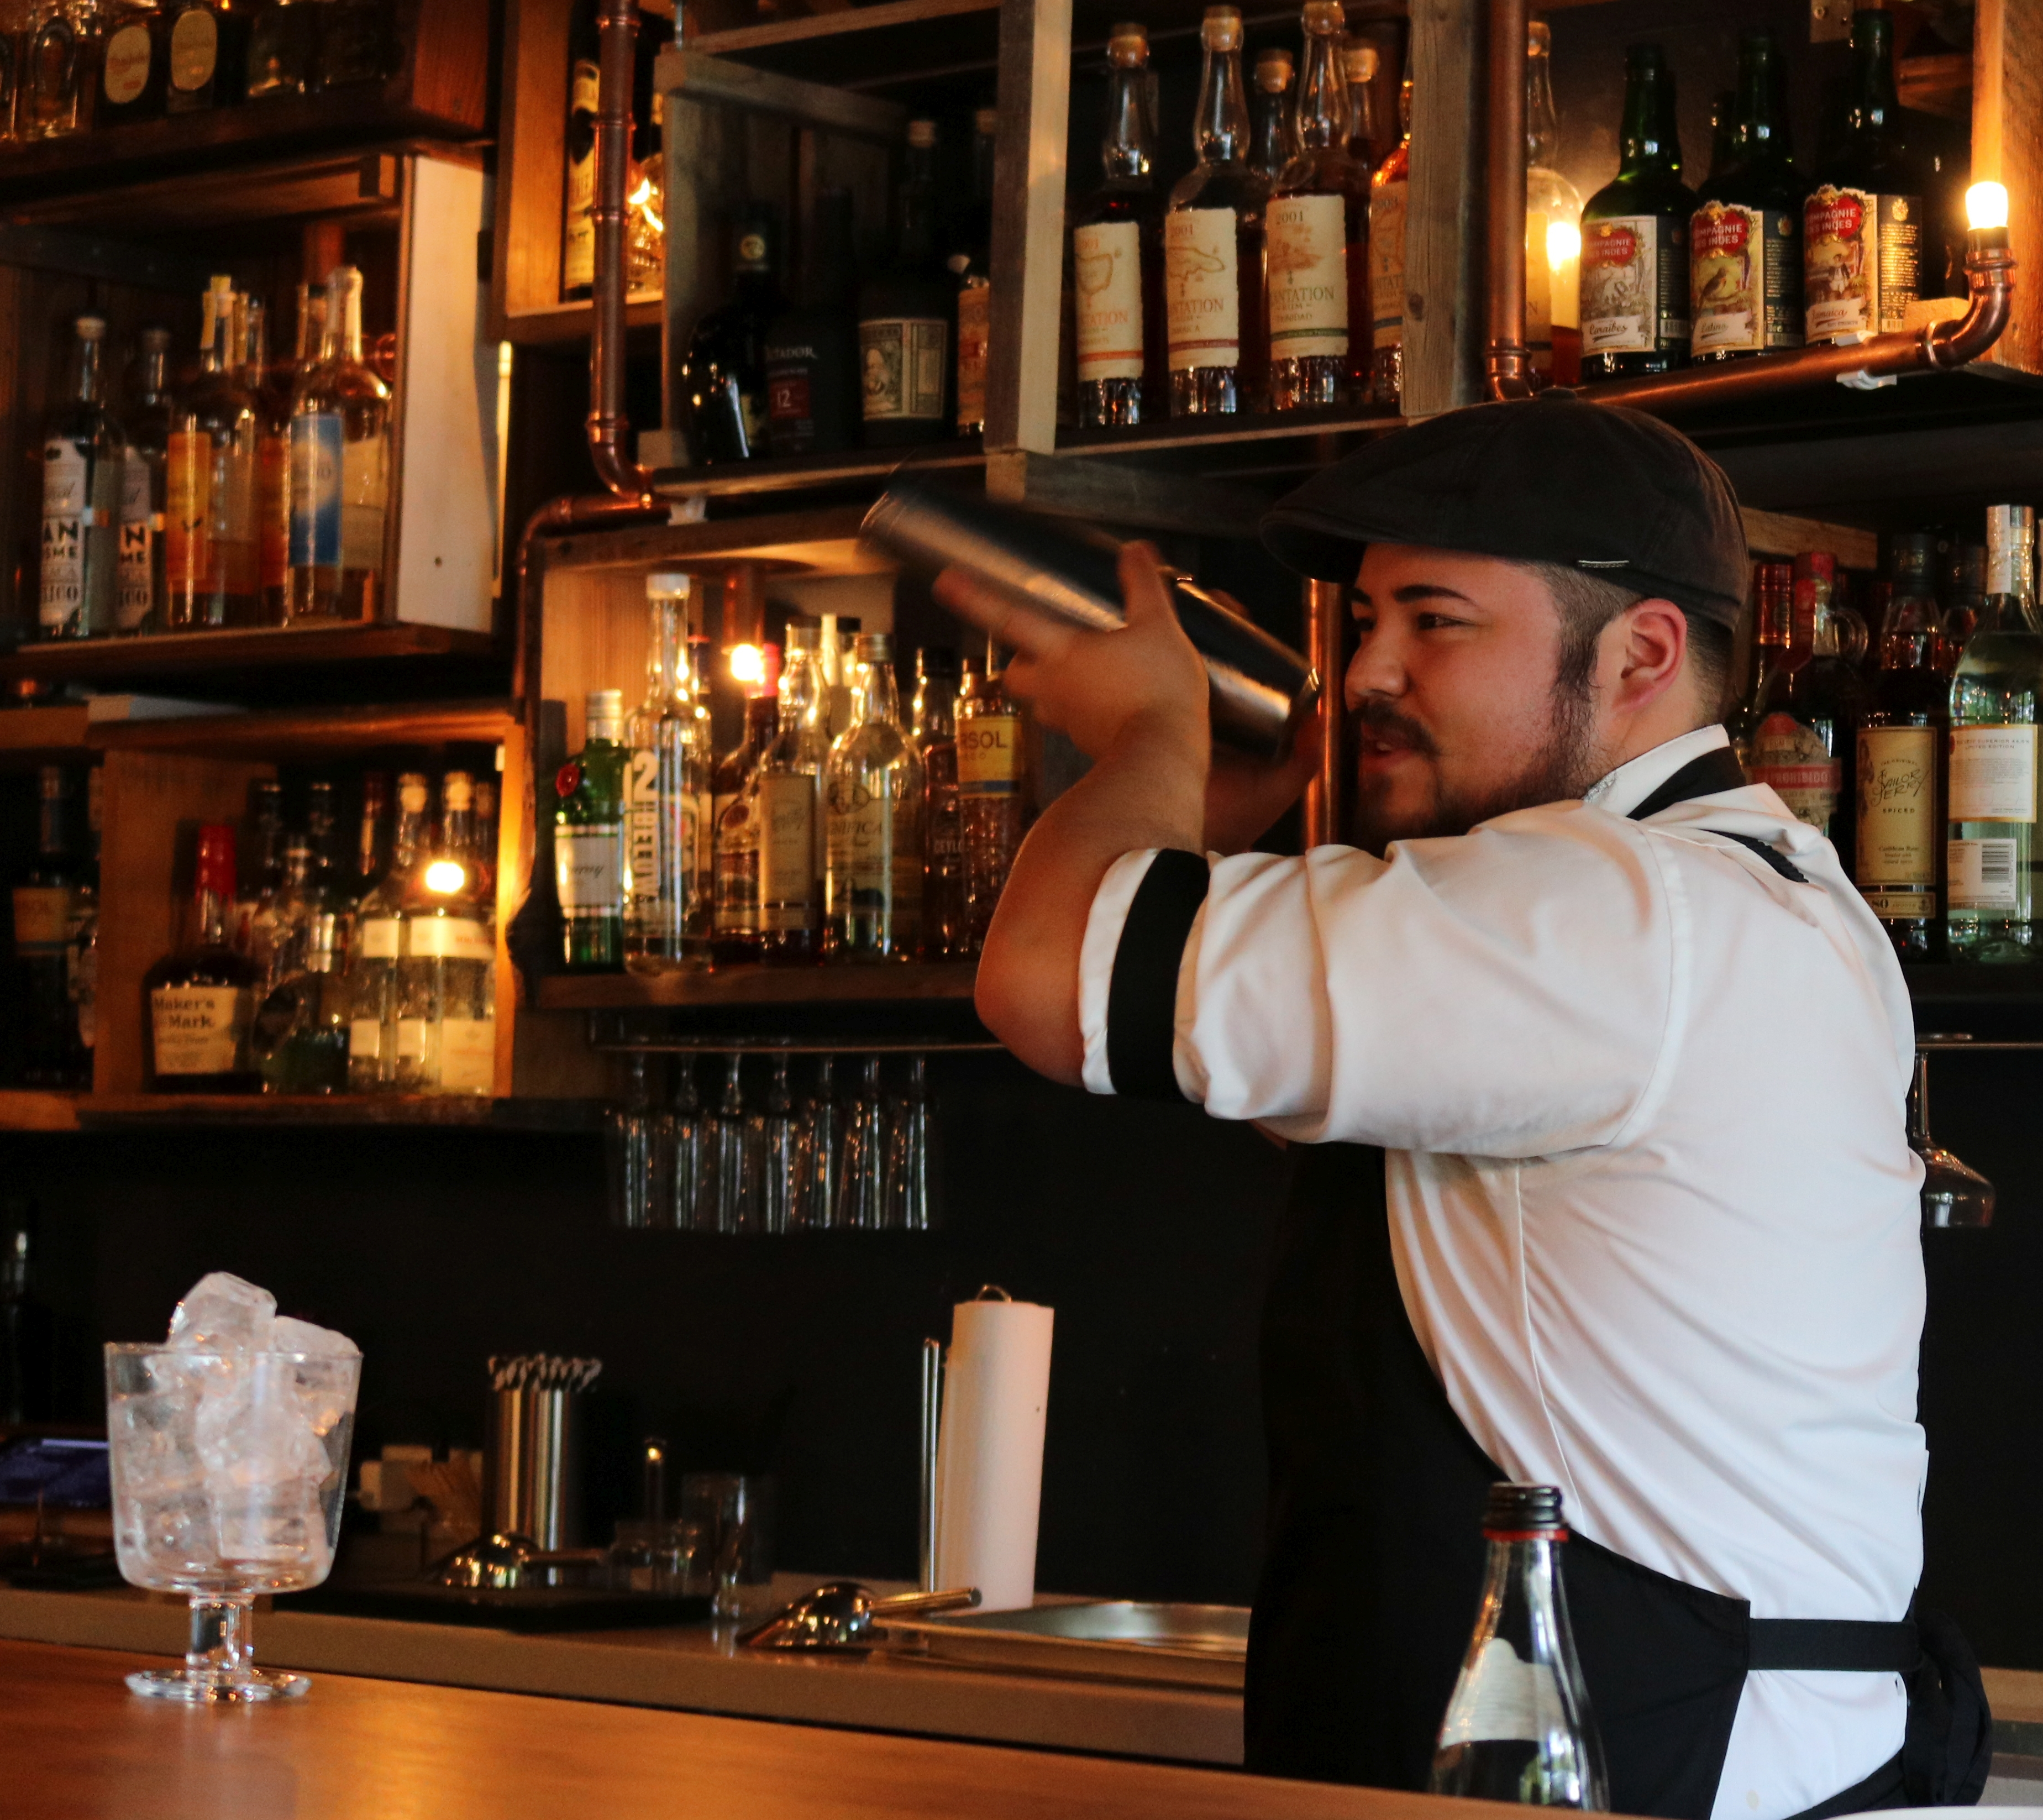 Barkeeper – Wikipedia